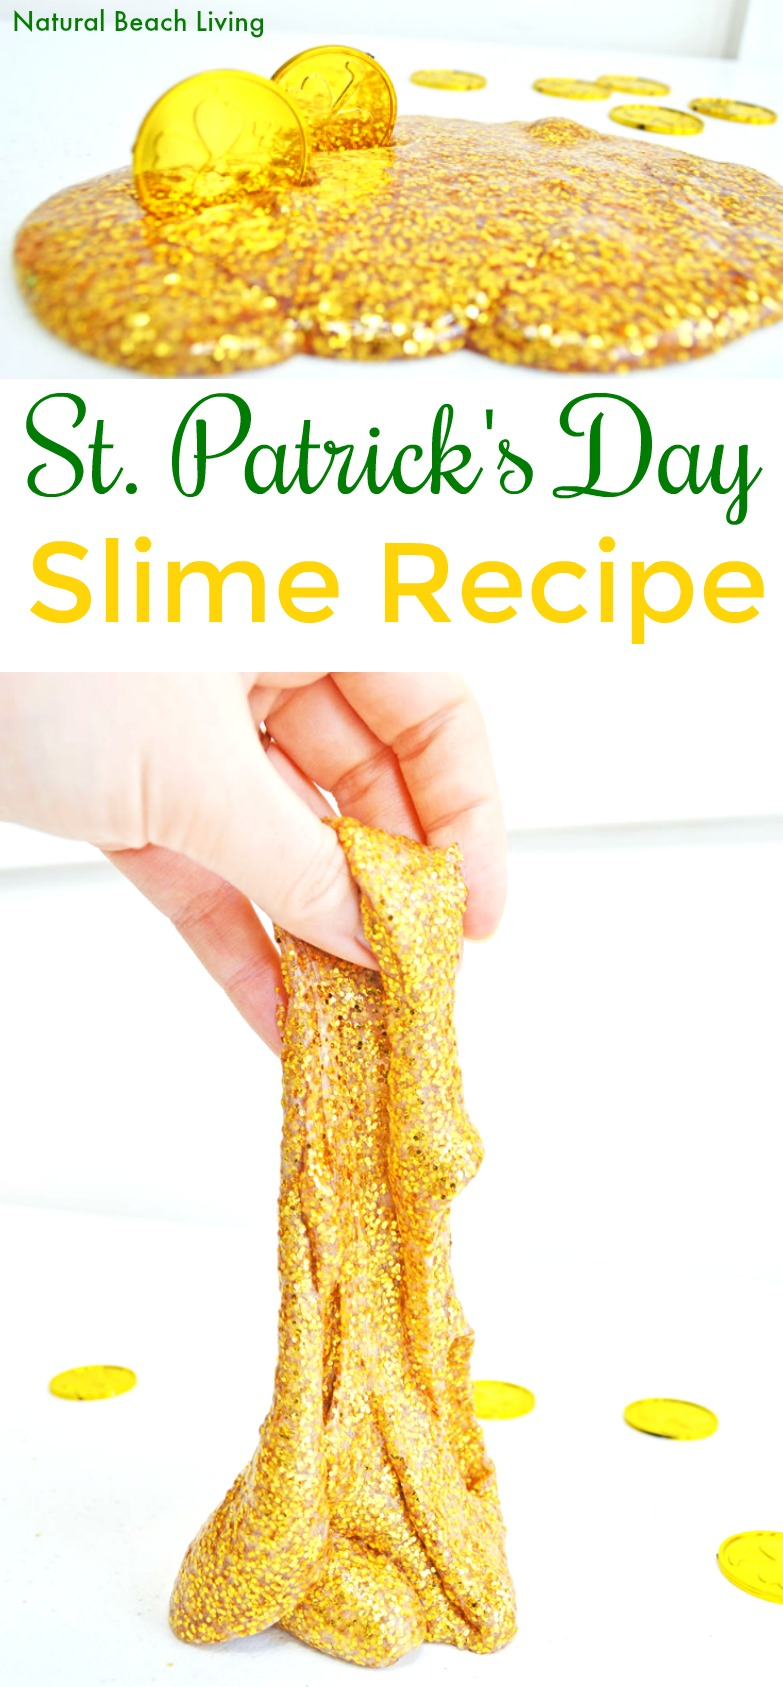 How to Make Slime Recipe with Contact Solution Kids Loves, Gold Glitter Slime, Gold Glitter Contact Solution Slime Recipe or Saline Solution slime with glue! One of the Best Sensory Play for Kids, St. Patrick's Day Slime Recipe, Homemade slime is super easy to make with our slime recipes. The Best Ways to Make Slime, Easy Slime Recipe with Baking Soda #slime #slimerecipe #slimerecipes #stpatricksday #stpatricksdaysensoryplay